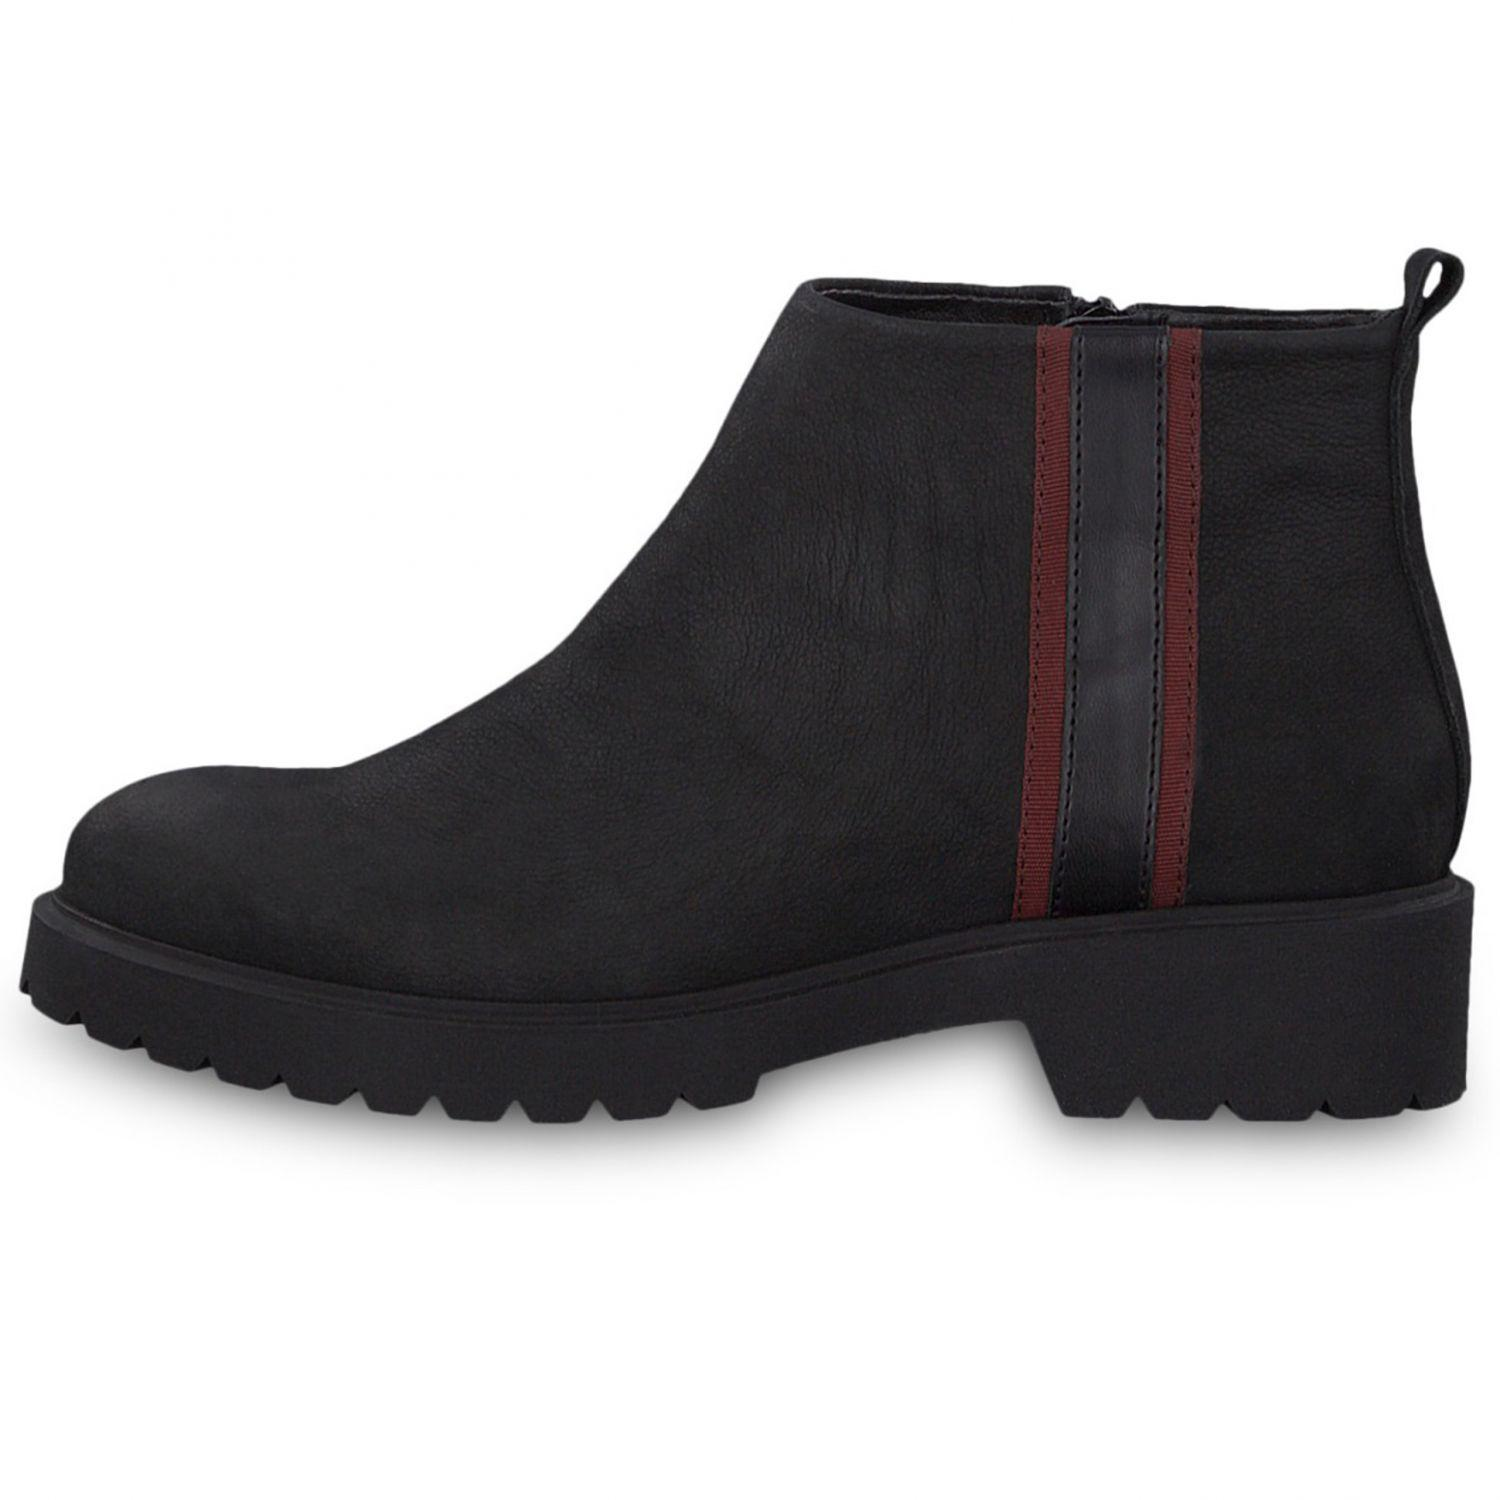 Stiefelette Damen Stiefelette Stiefelette Chelsea Boots Stiefelette Chelsea Damen Boots Damen Chelsea Chelsea Boots Yby76fvg